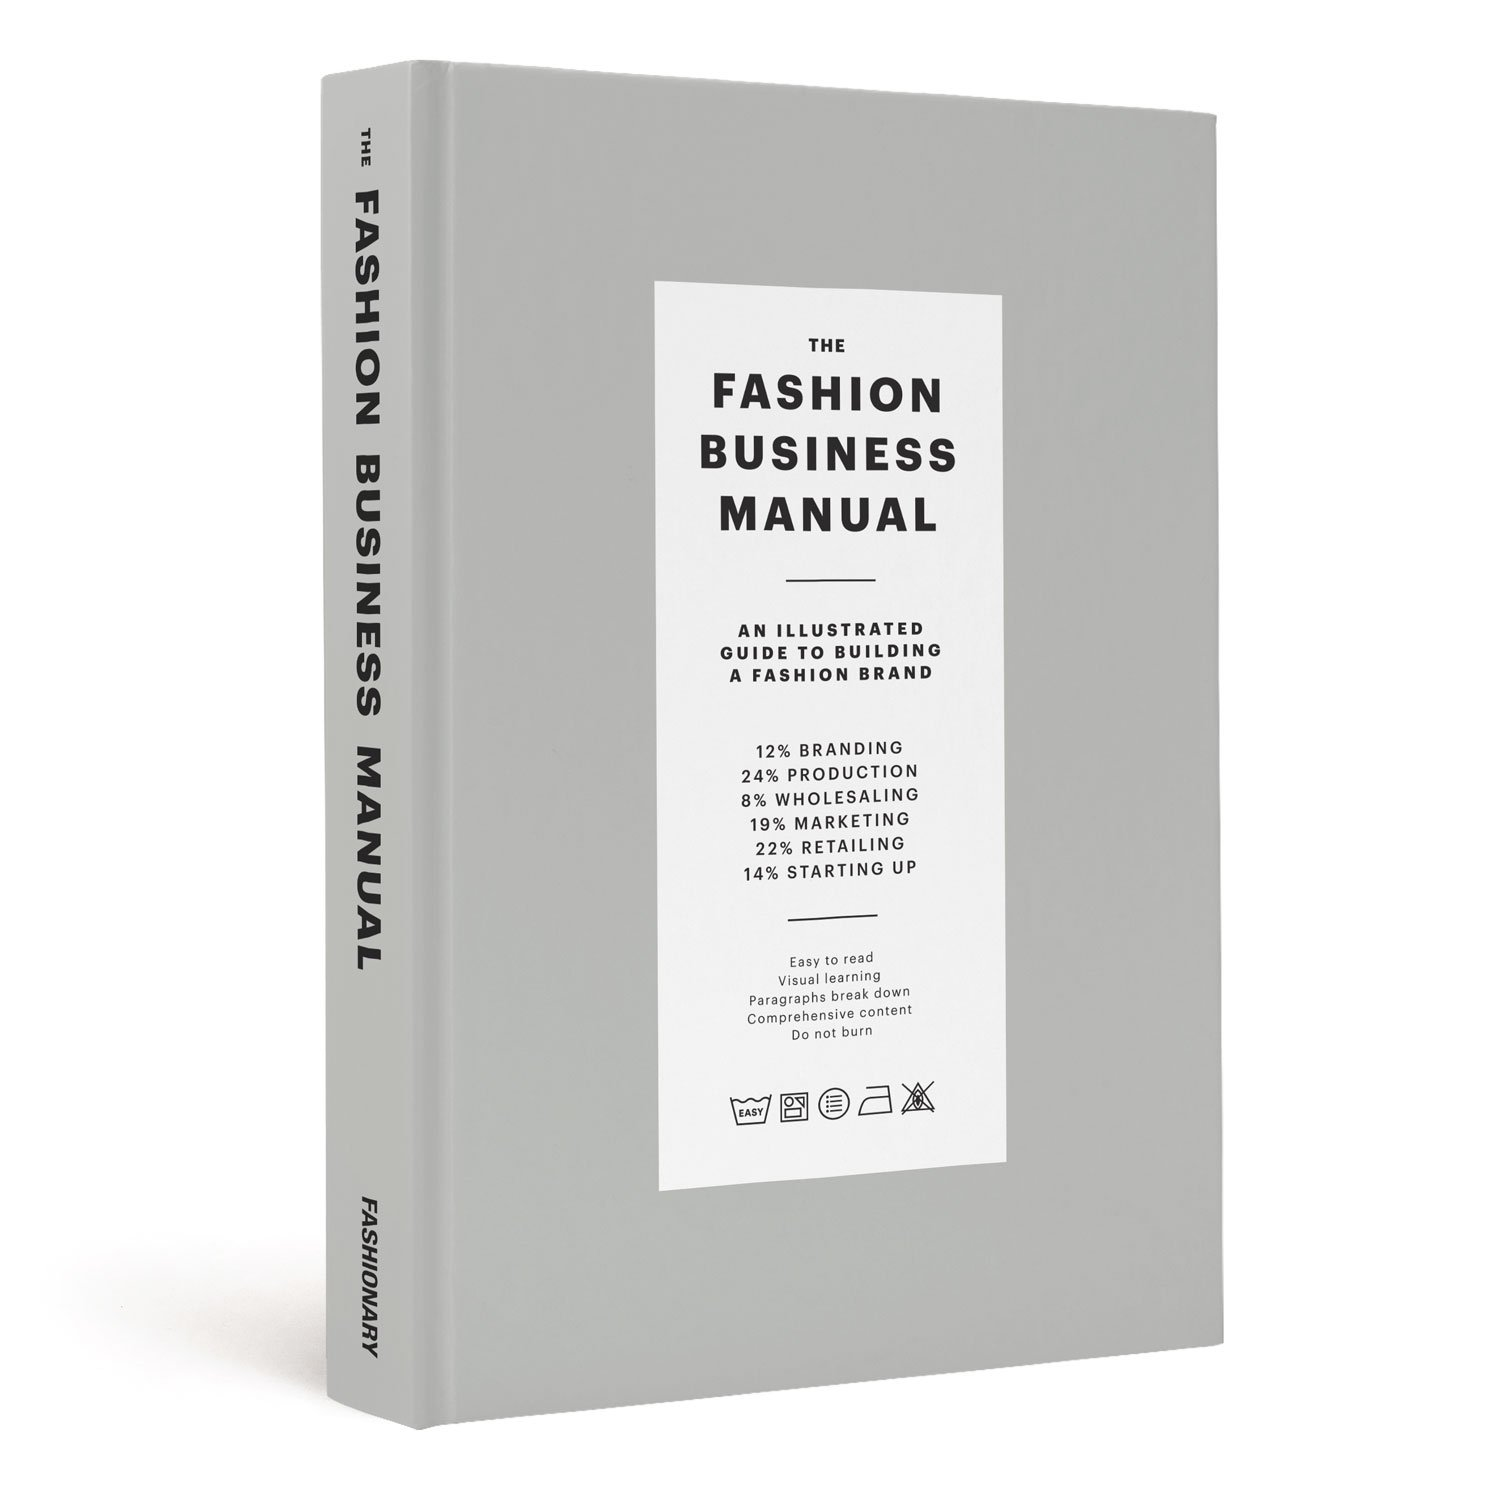 The-Fashion-Business-Manual-Cover-1